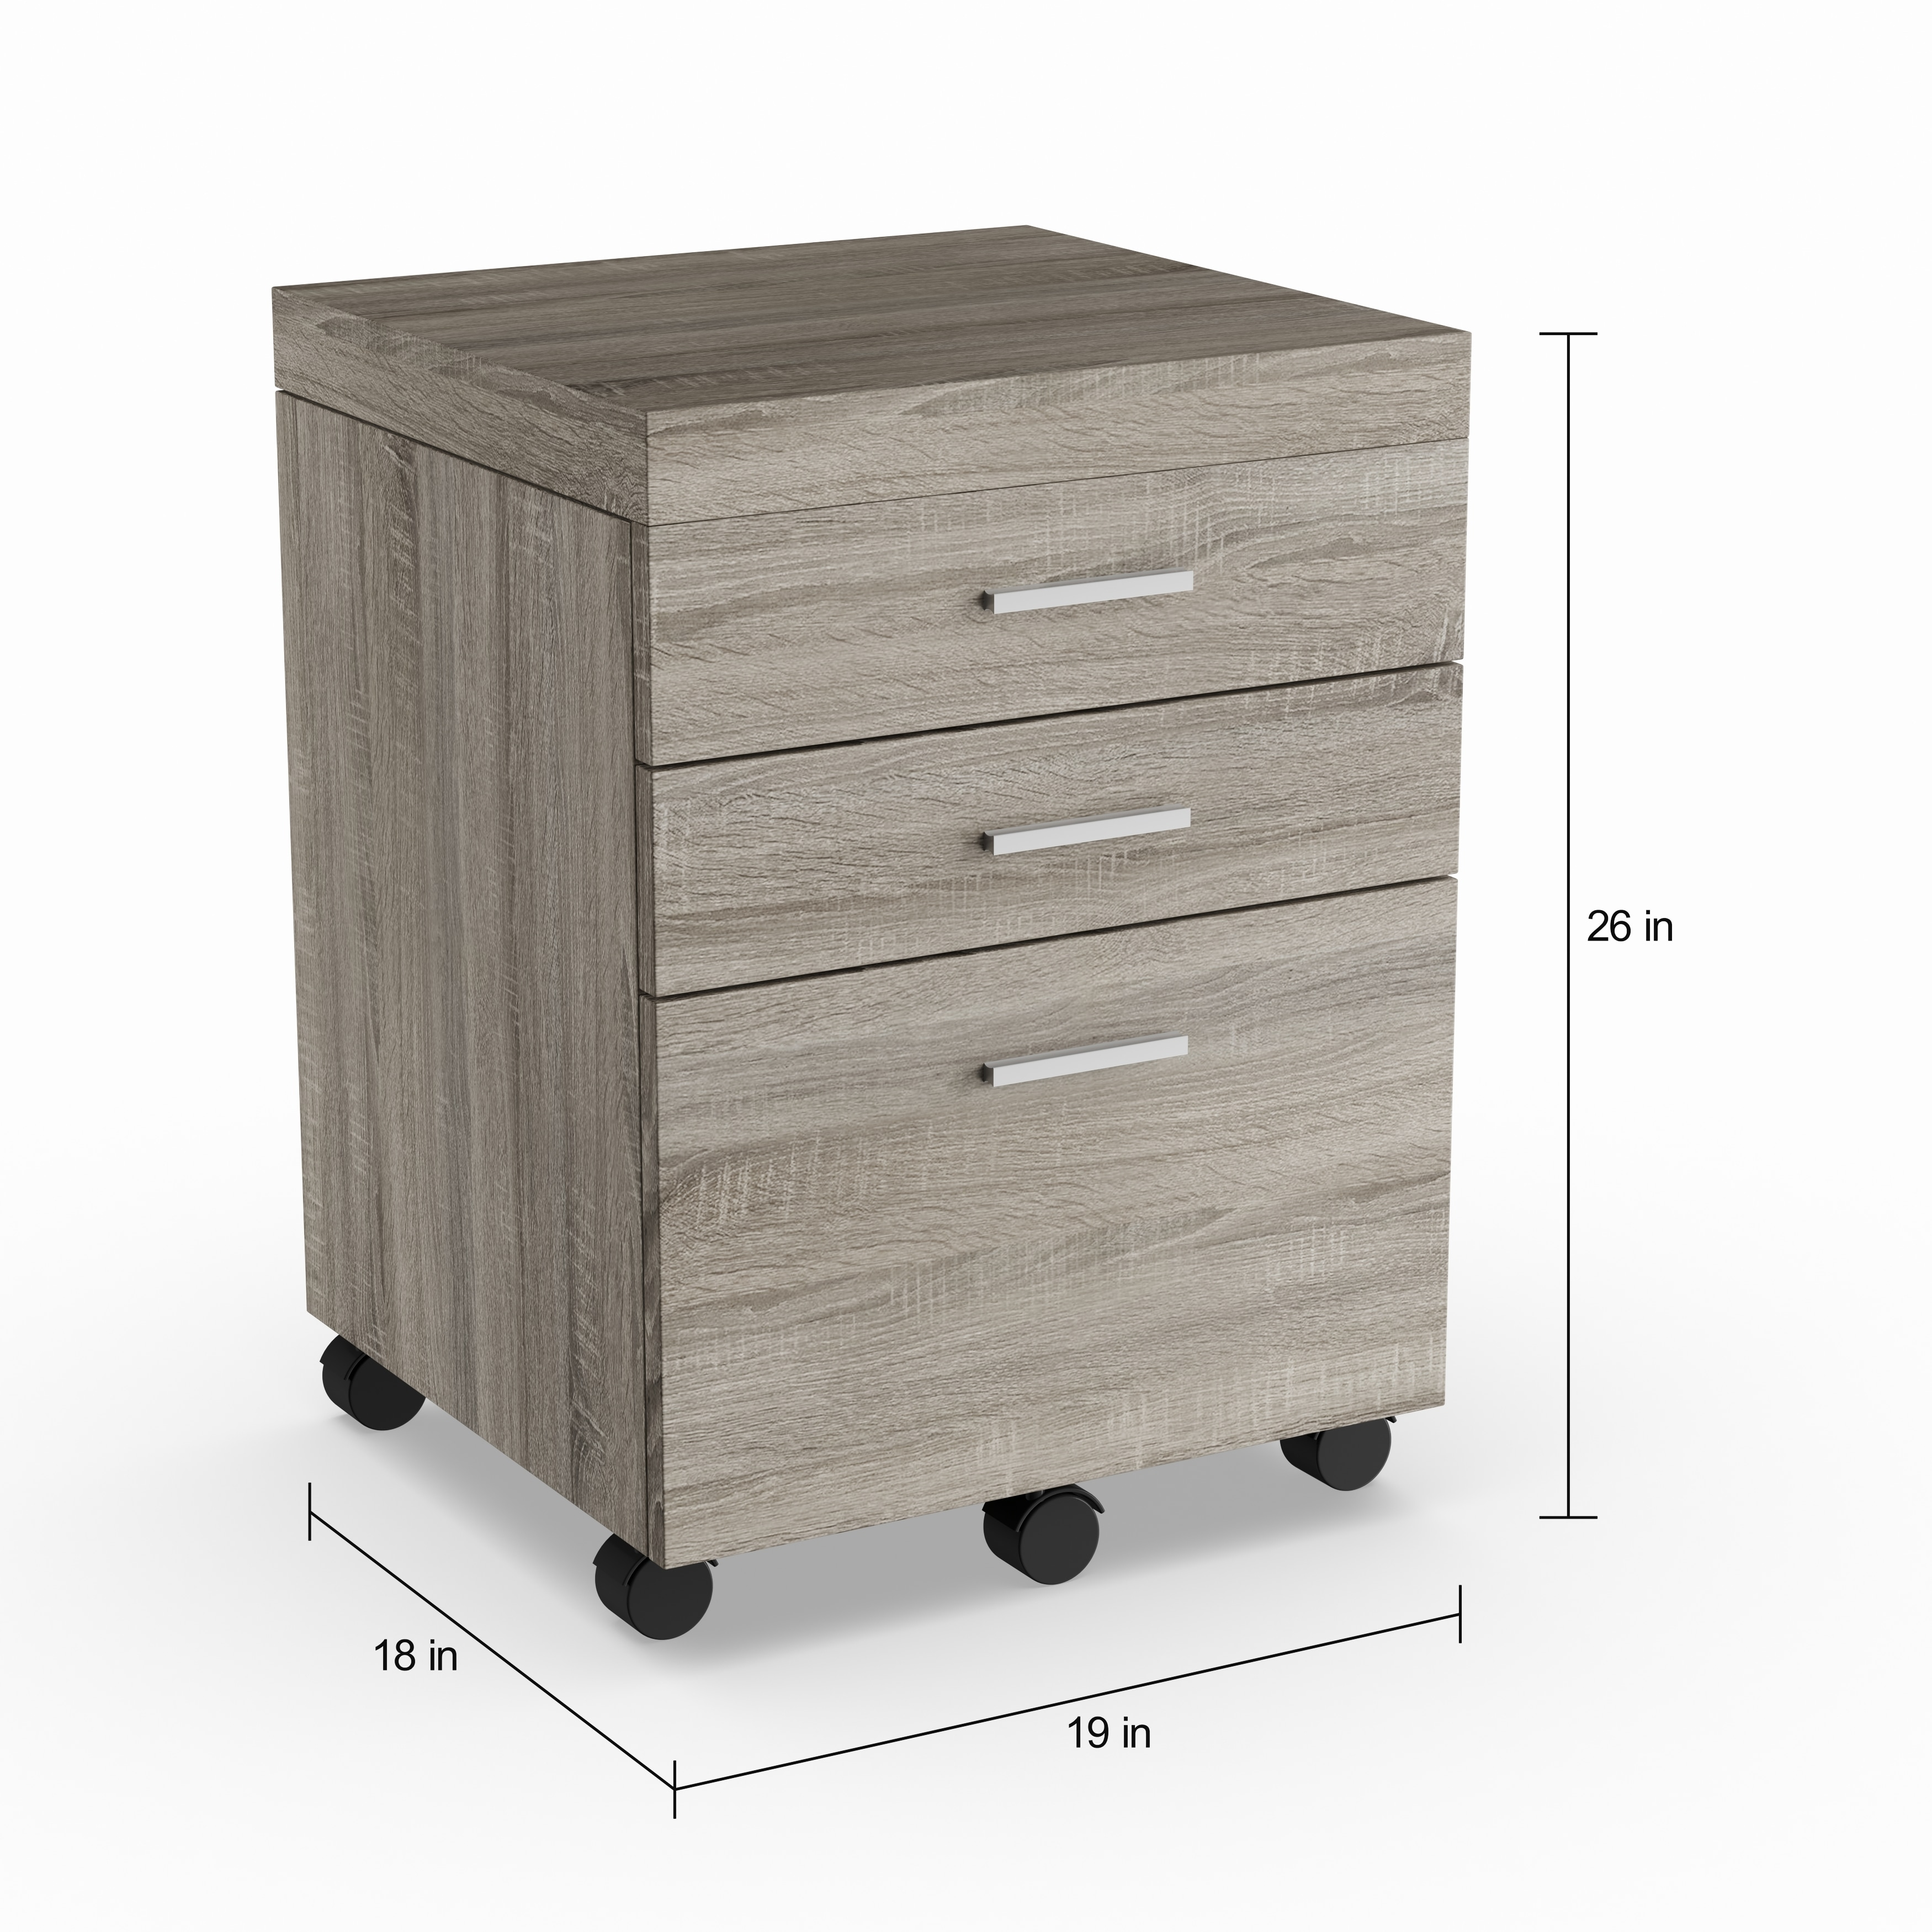 Shop Strick \u0026 Bolton Joffe 3-drawer File Cabinet - Free Shipping Today Overstock.com 20223255